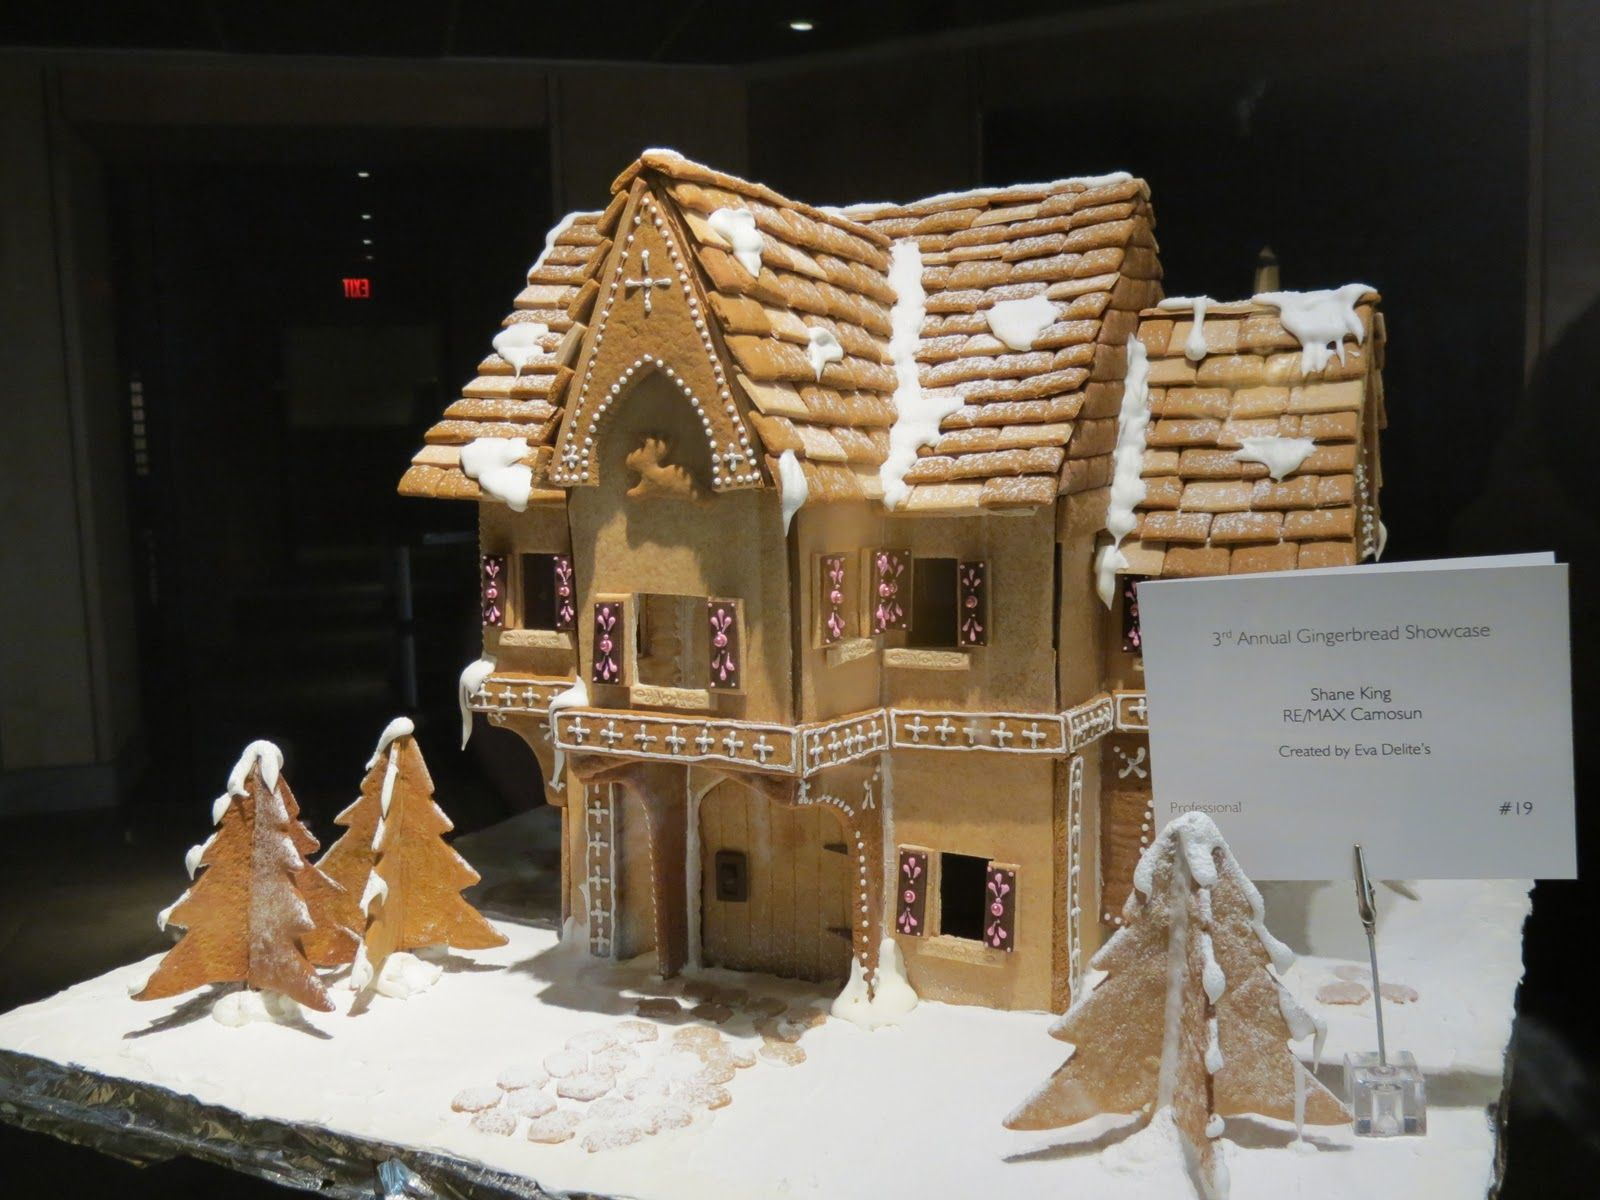 House design cake - Gingerbread House Design By Rebecca Sutterby